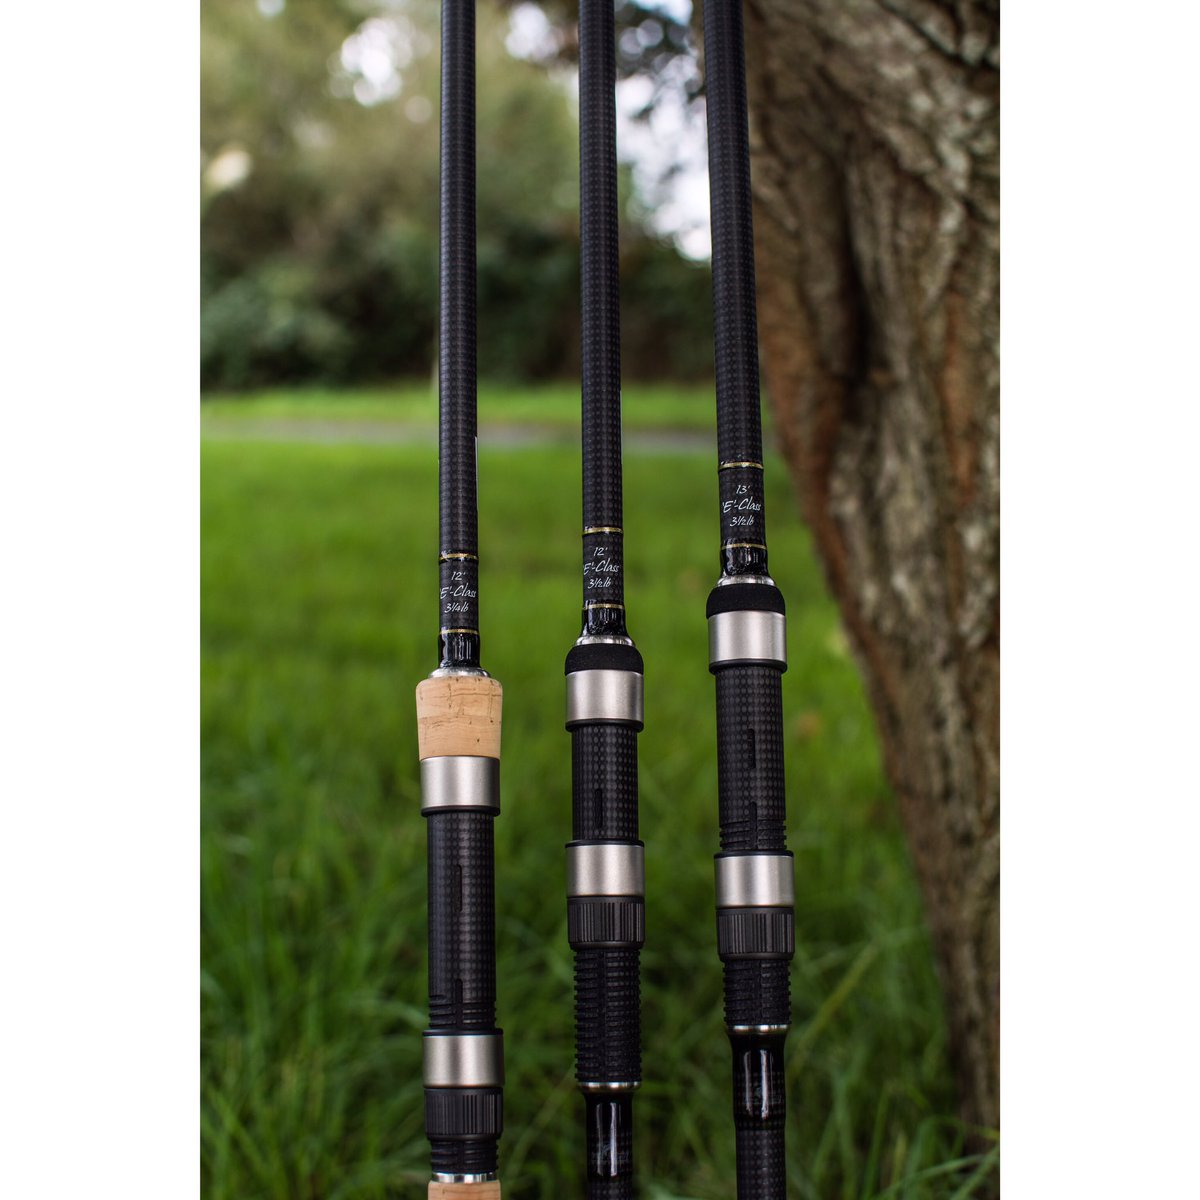 In a class of their own... #<b>Free</b>spiriteclass  #southcoastrods #carprods #carpfishing  #carp h